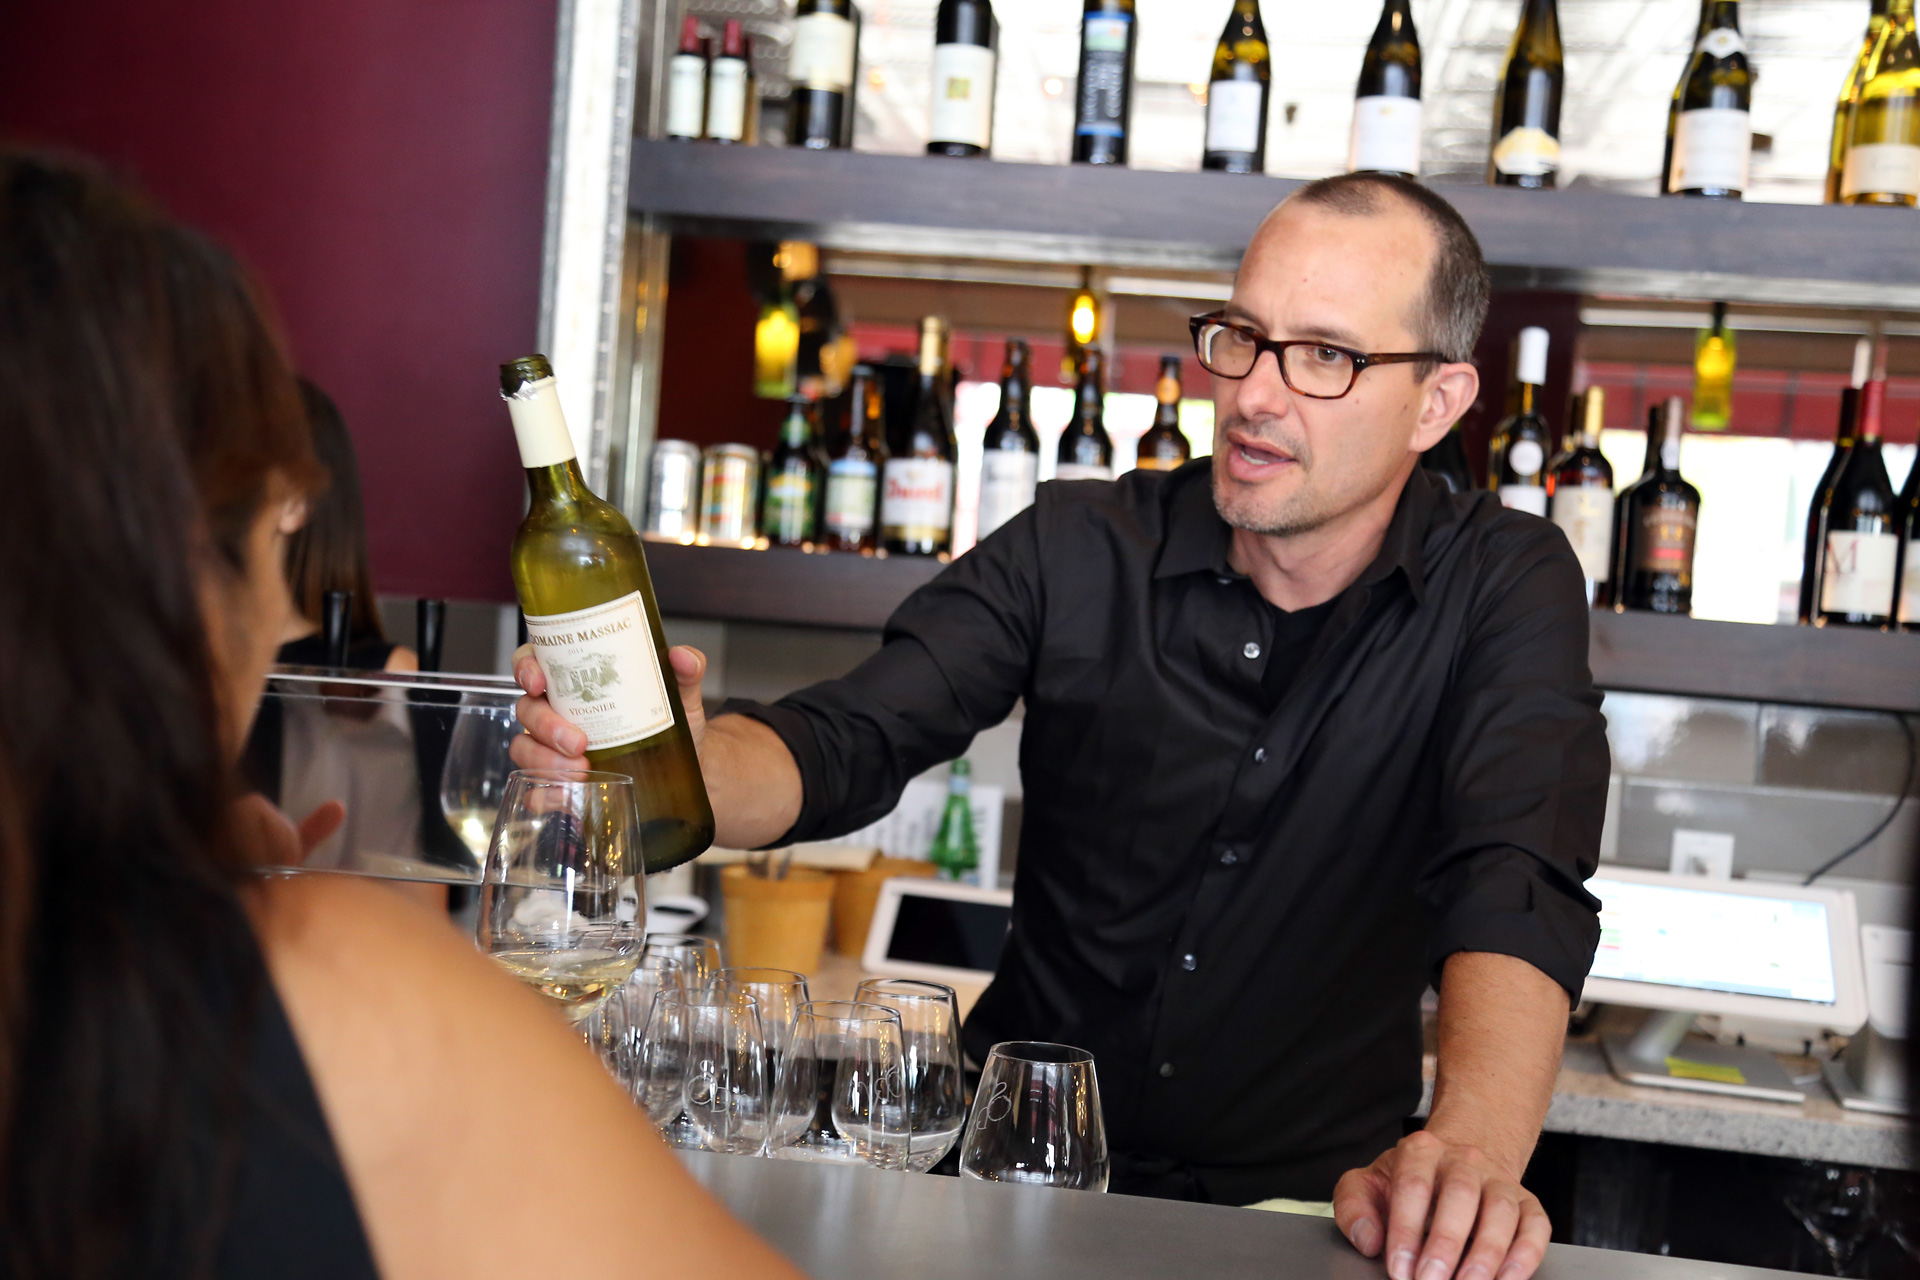 Wine Therapist and Educator, Joel S. Bachar, serves serving wine at the bar at Scopo Divino